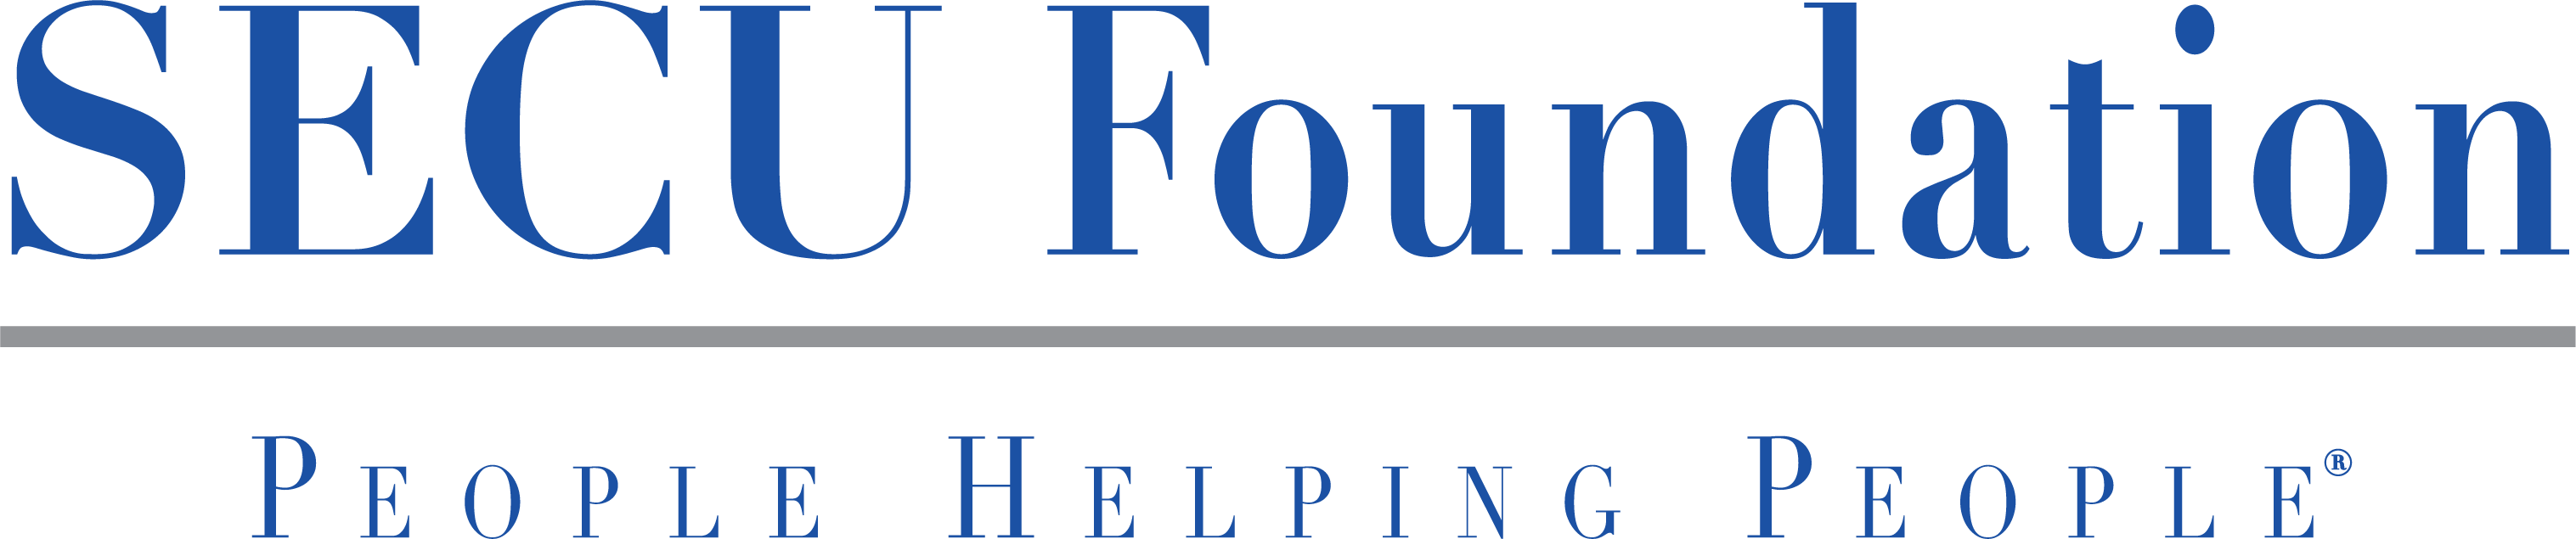 SECU_Foundation_logo_trademark_2728 (1).png